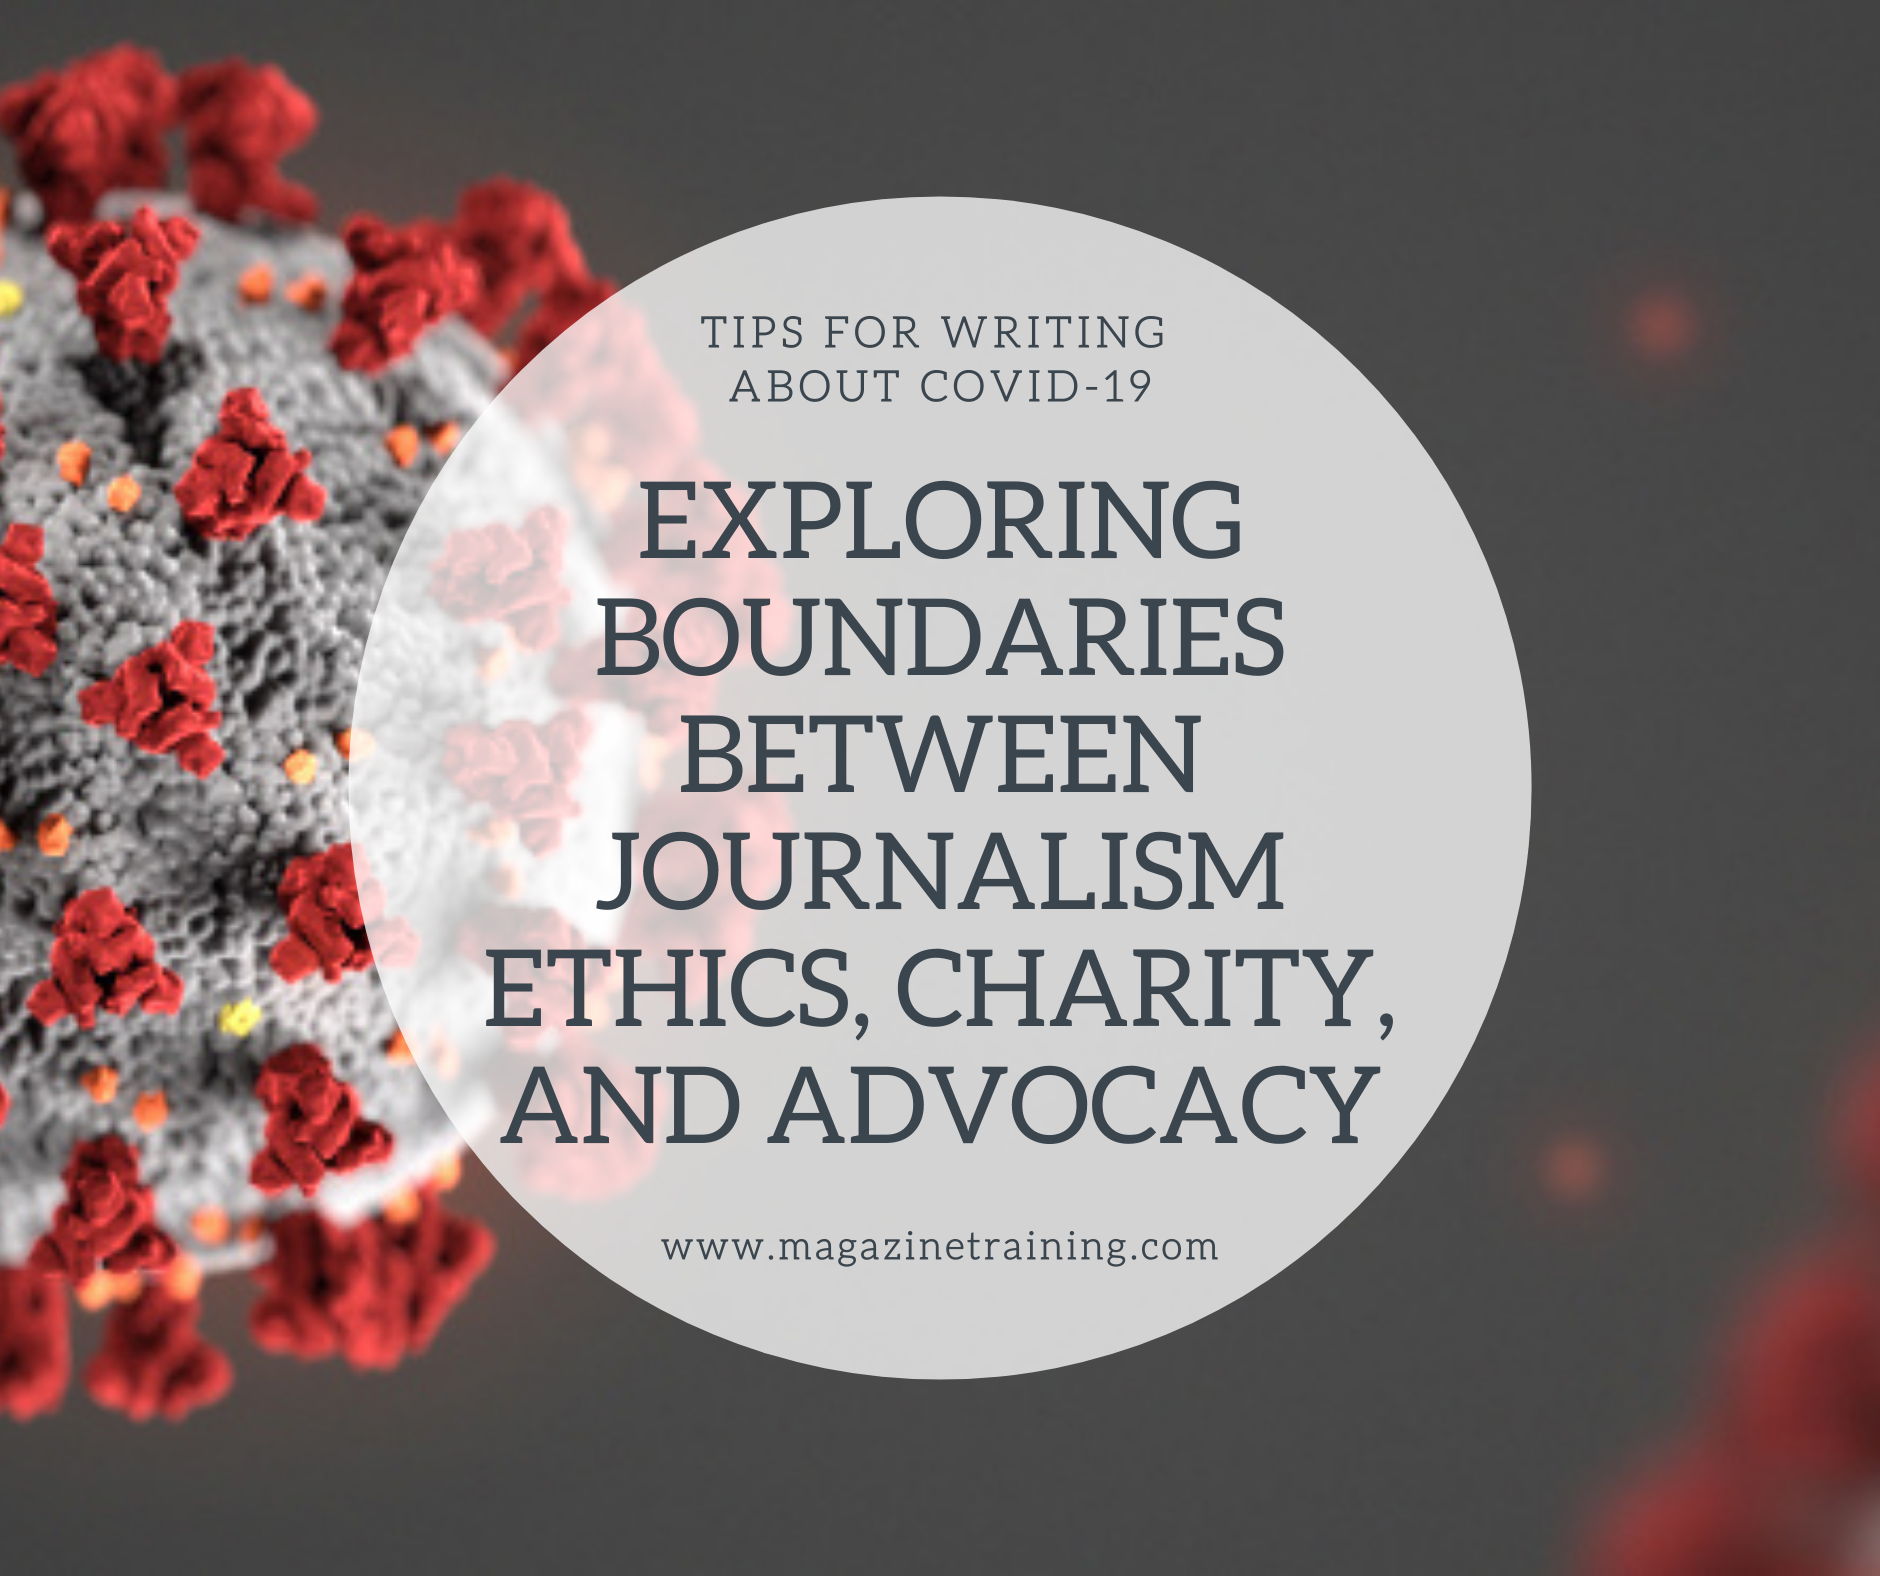 journalism ethics, charity, and advocacy